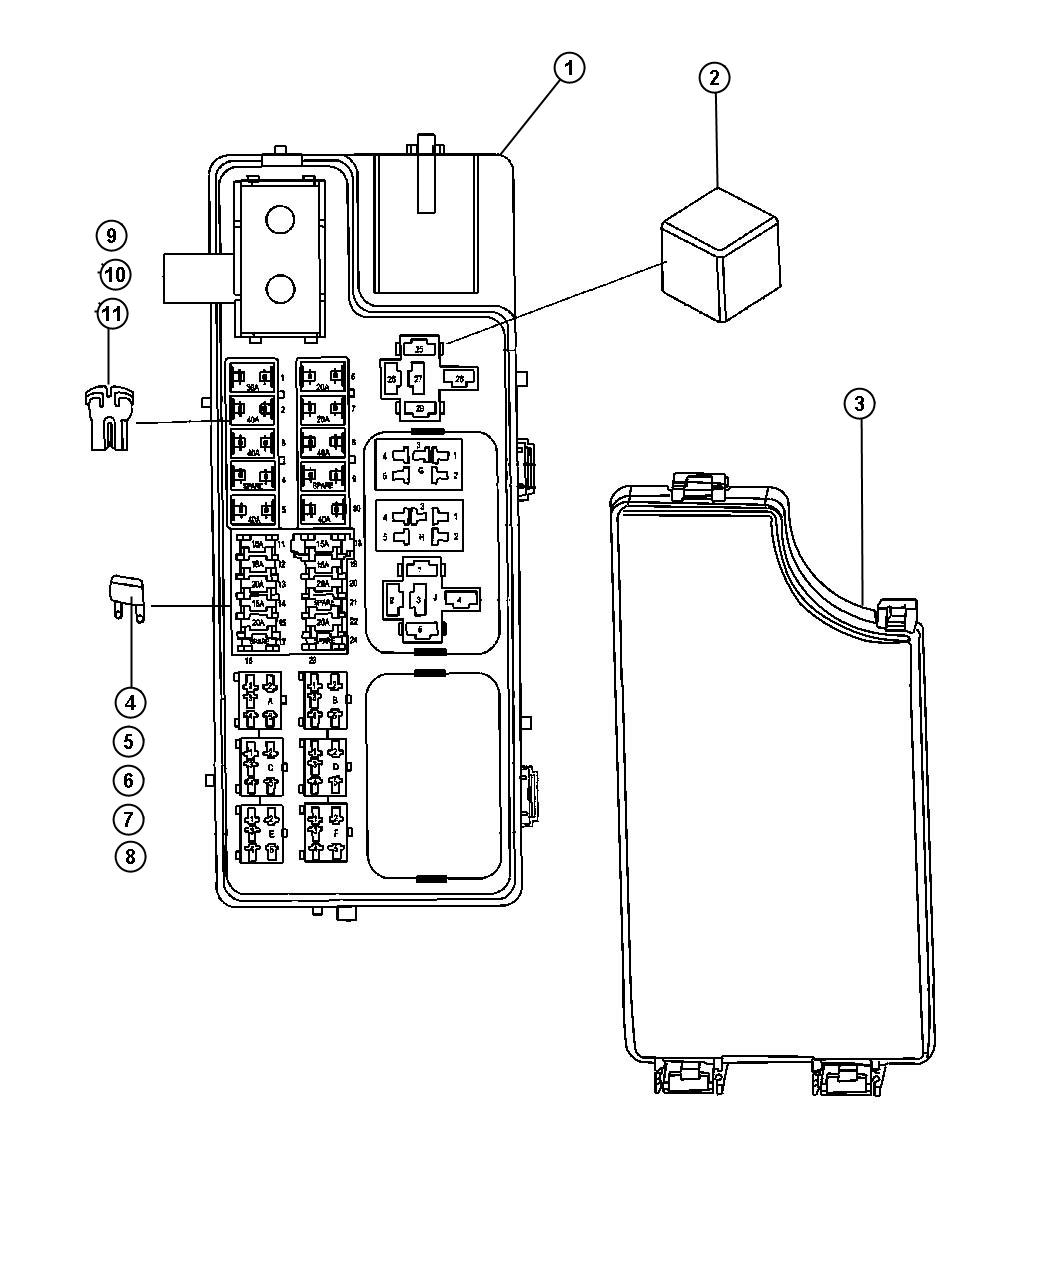 07 dodge caliber headlight wiring diagram for a 5 pin relay get free image